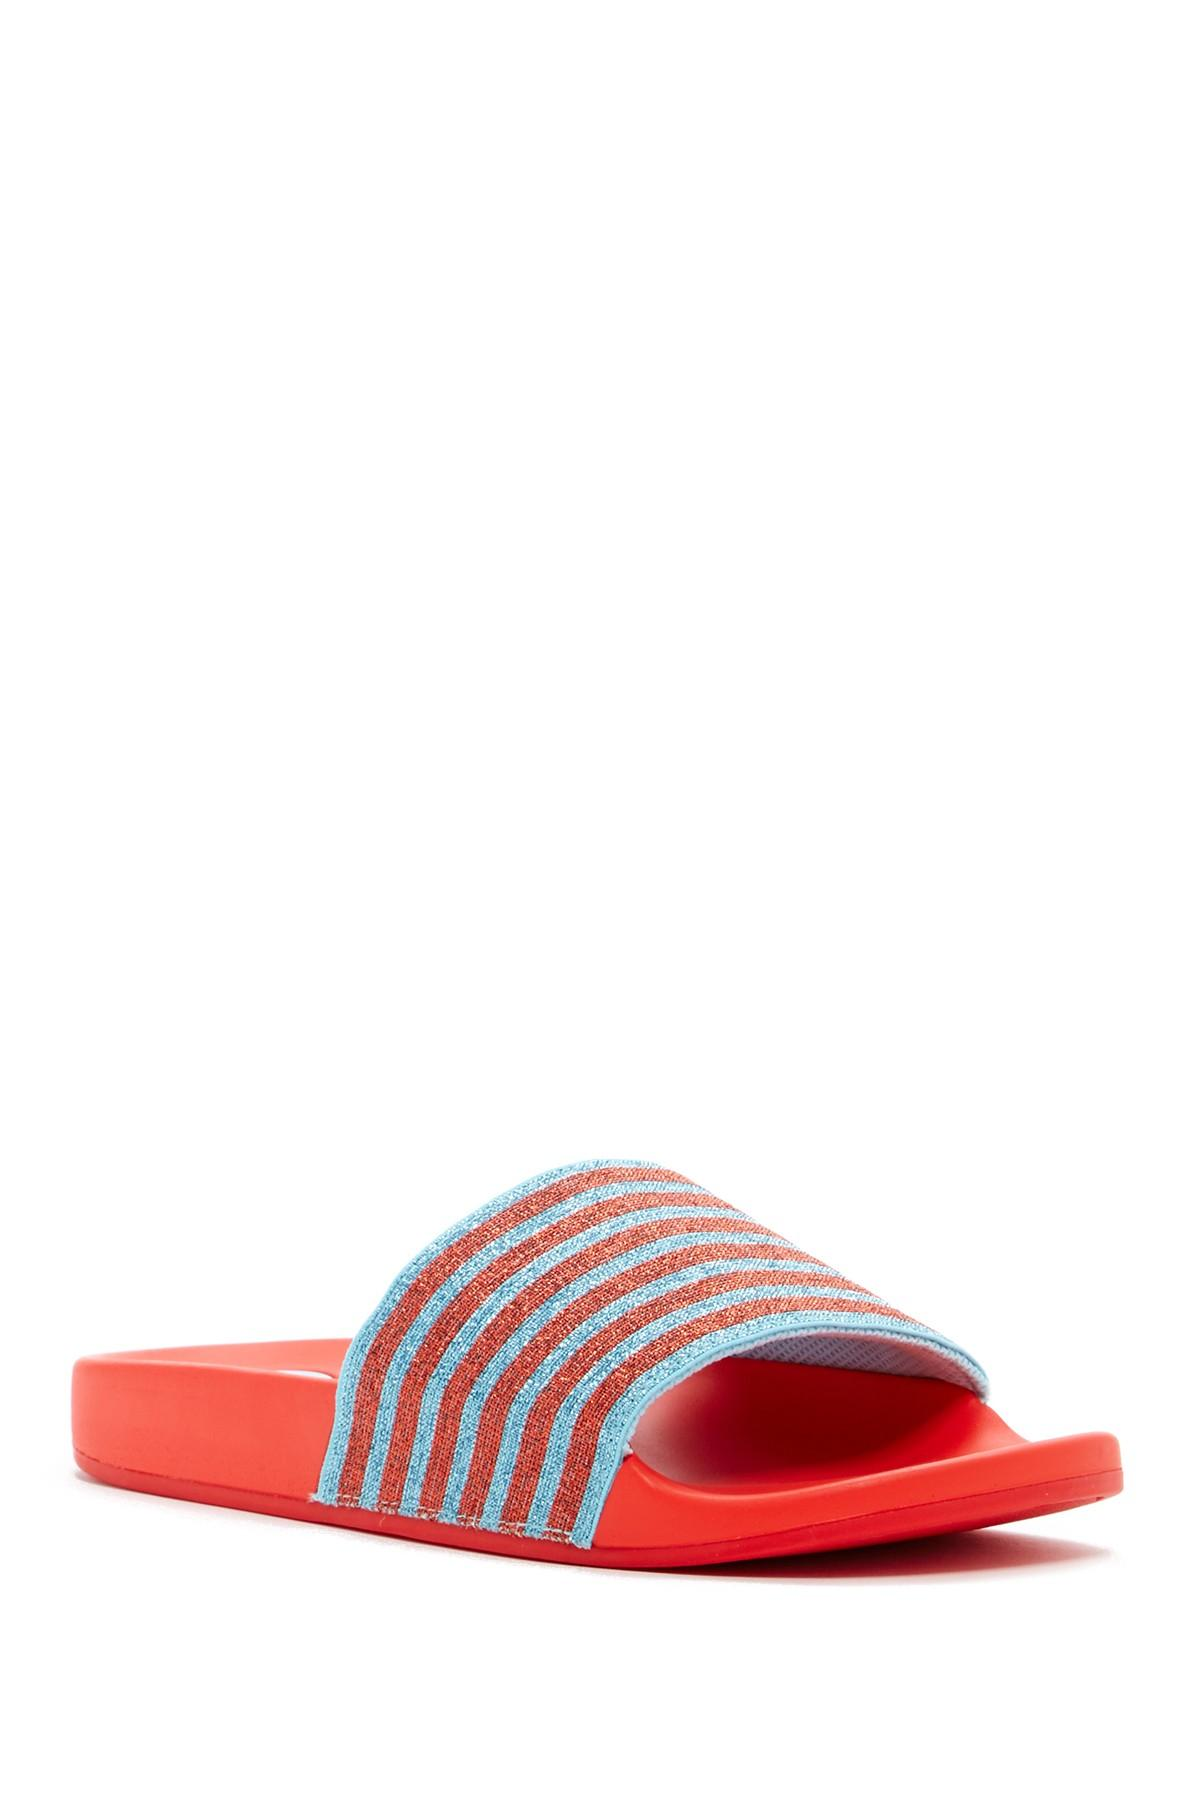 Lyst Marc Jacobs Cooper Sport Slide Sandal In Red